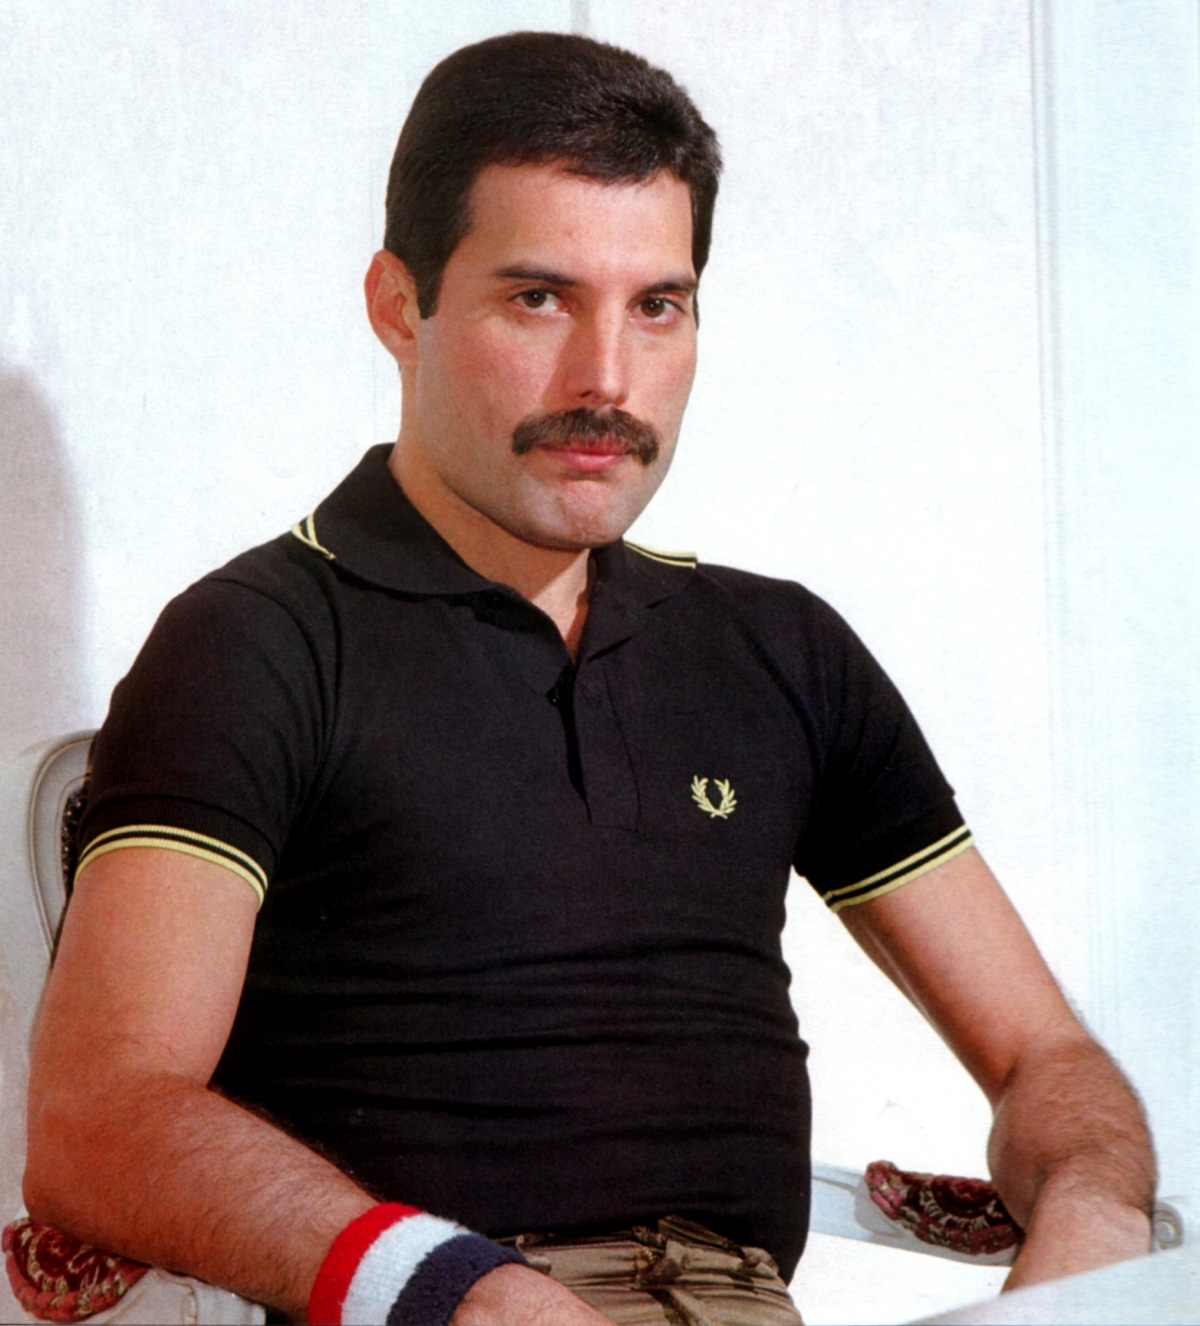 freddie mercury - photo #6